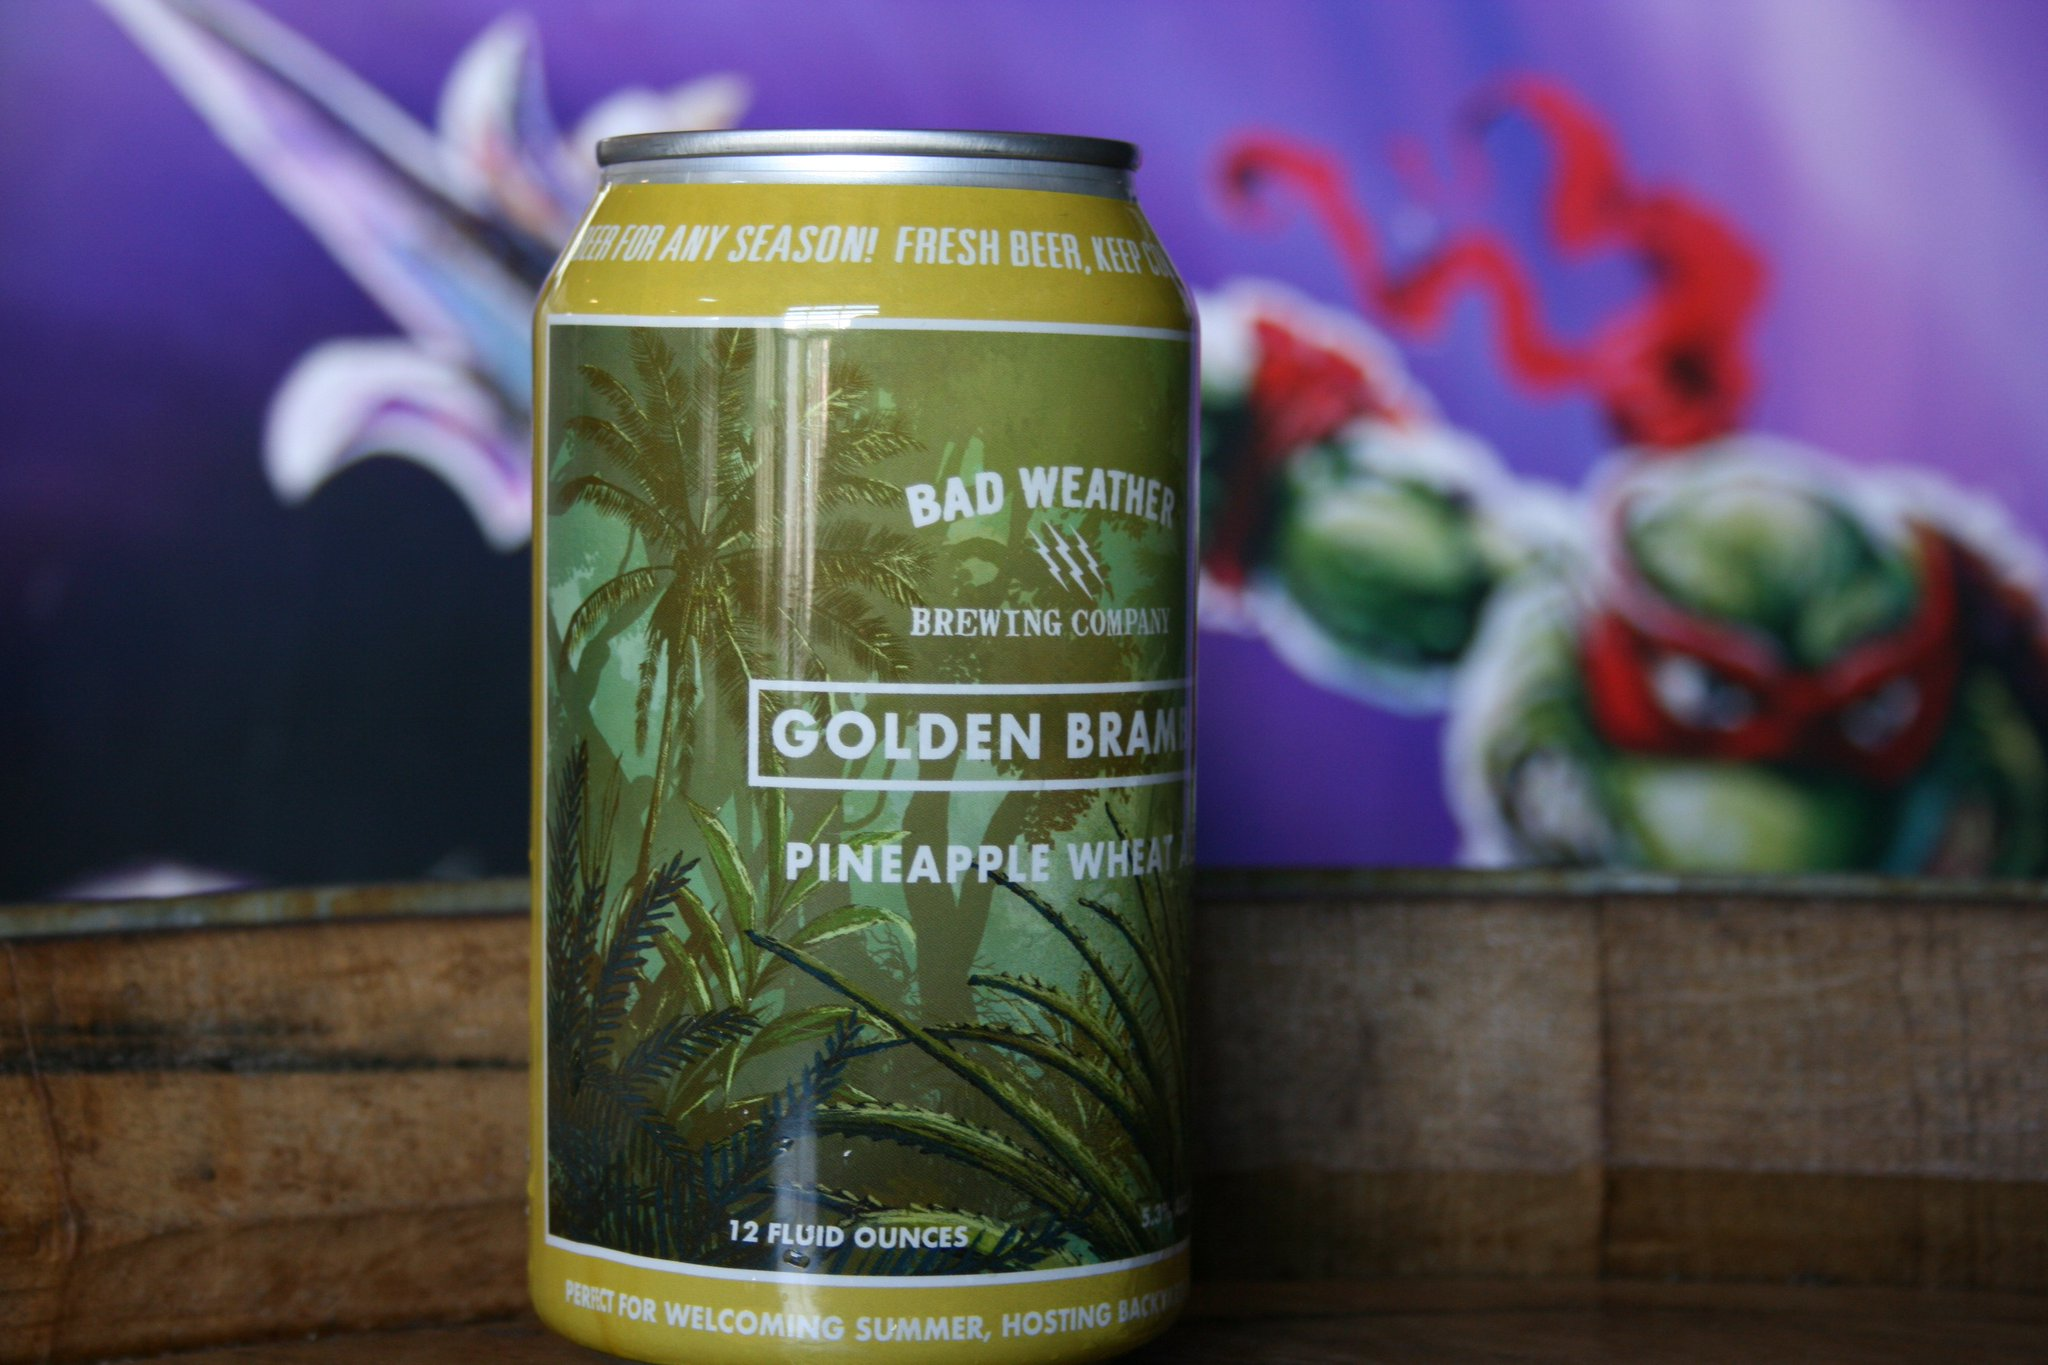 Bad Weather Golden Bramble // Photo via Bad Weather Brewing Company's Twitter